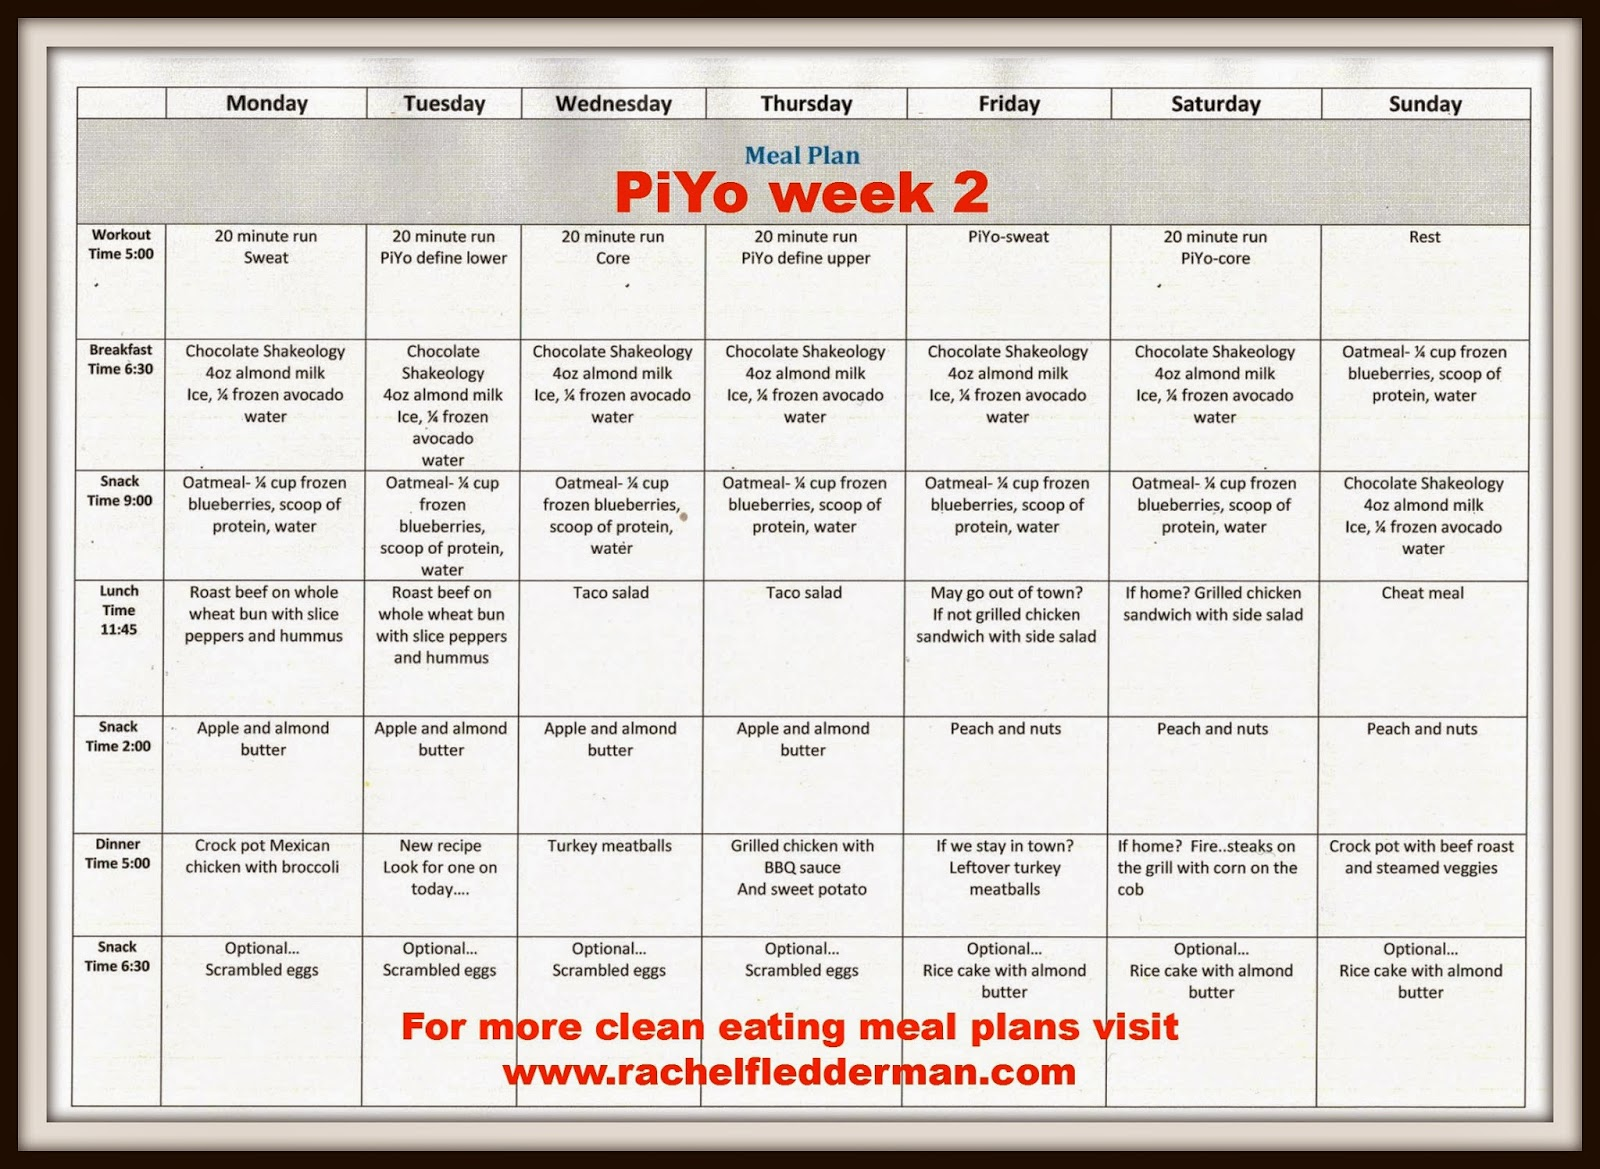 PiYo week 2 meal plan